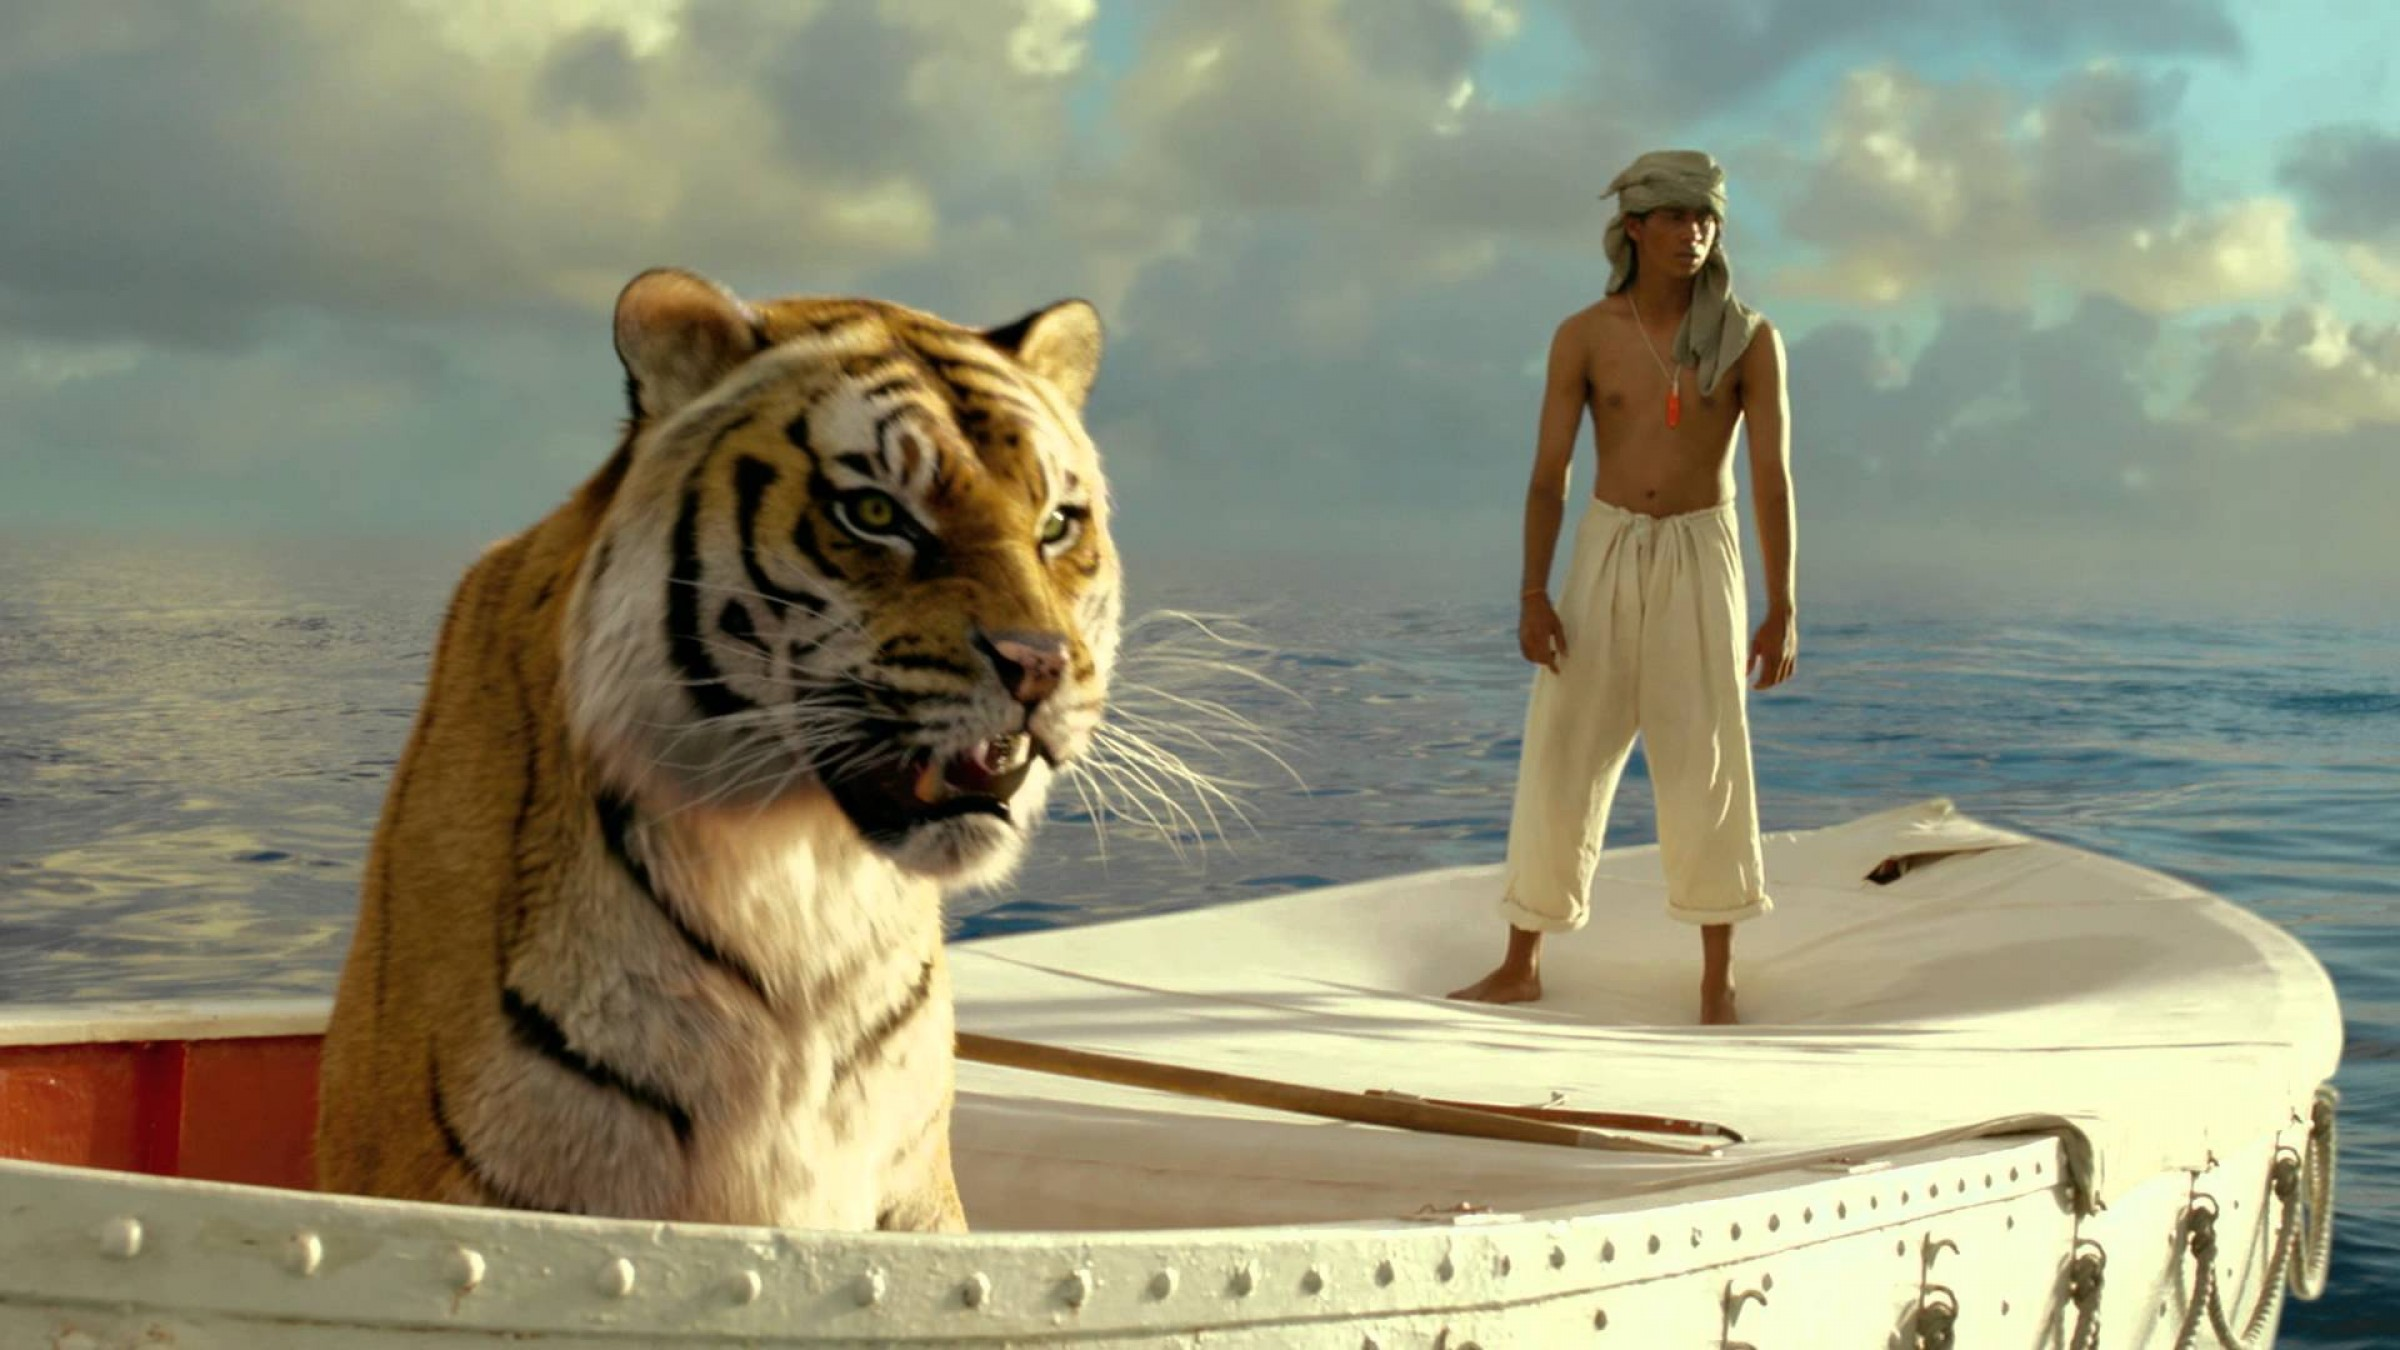 watch inside the cinematography of life of pi dp claudio m da